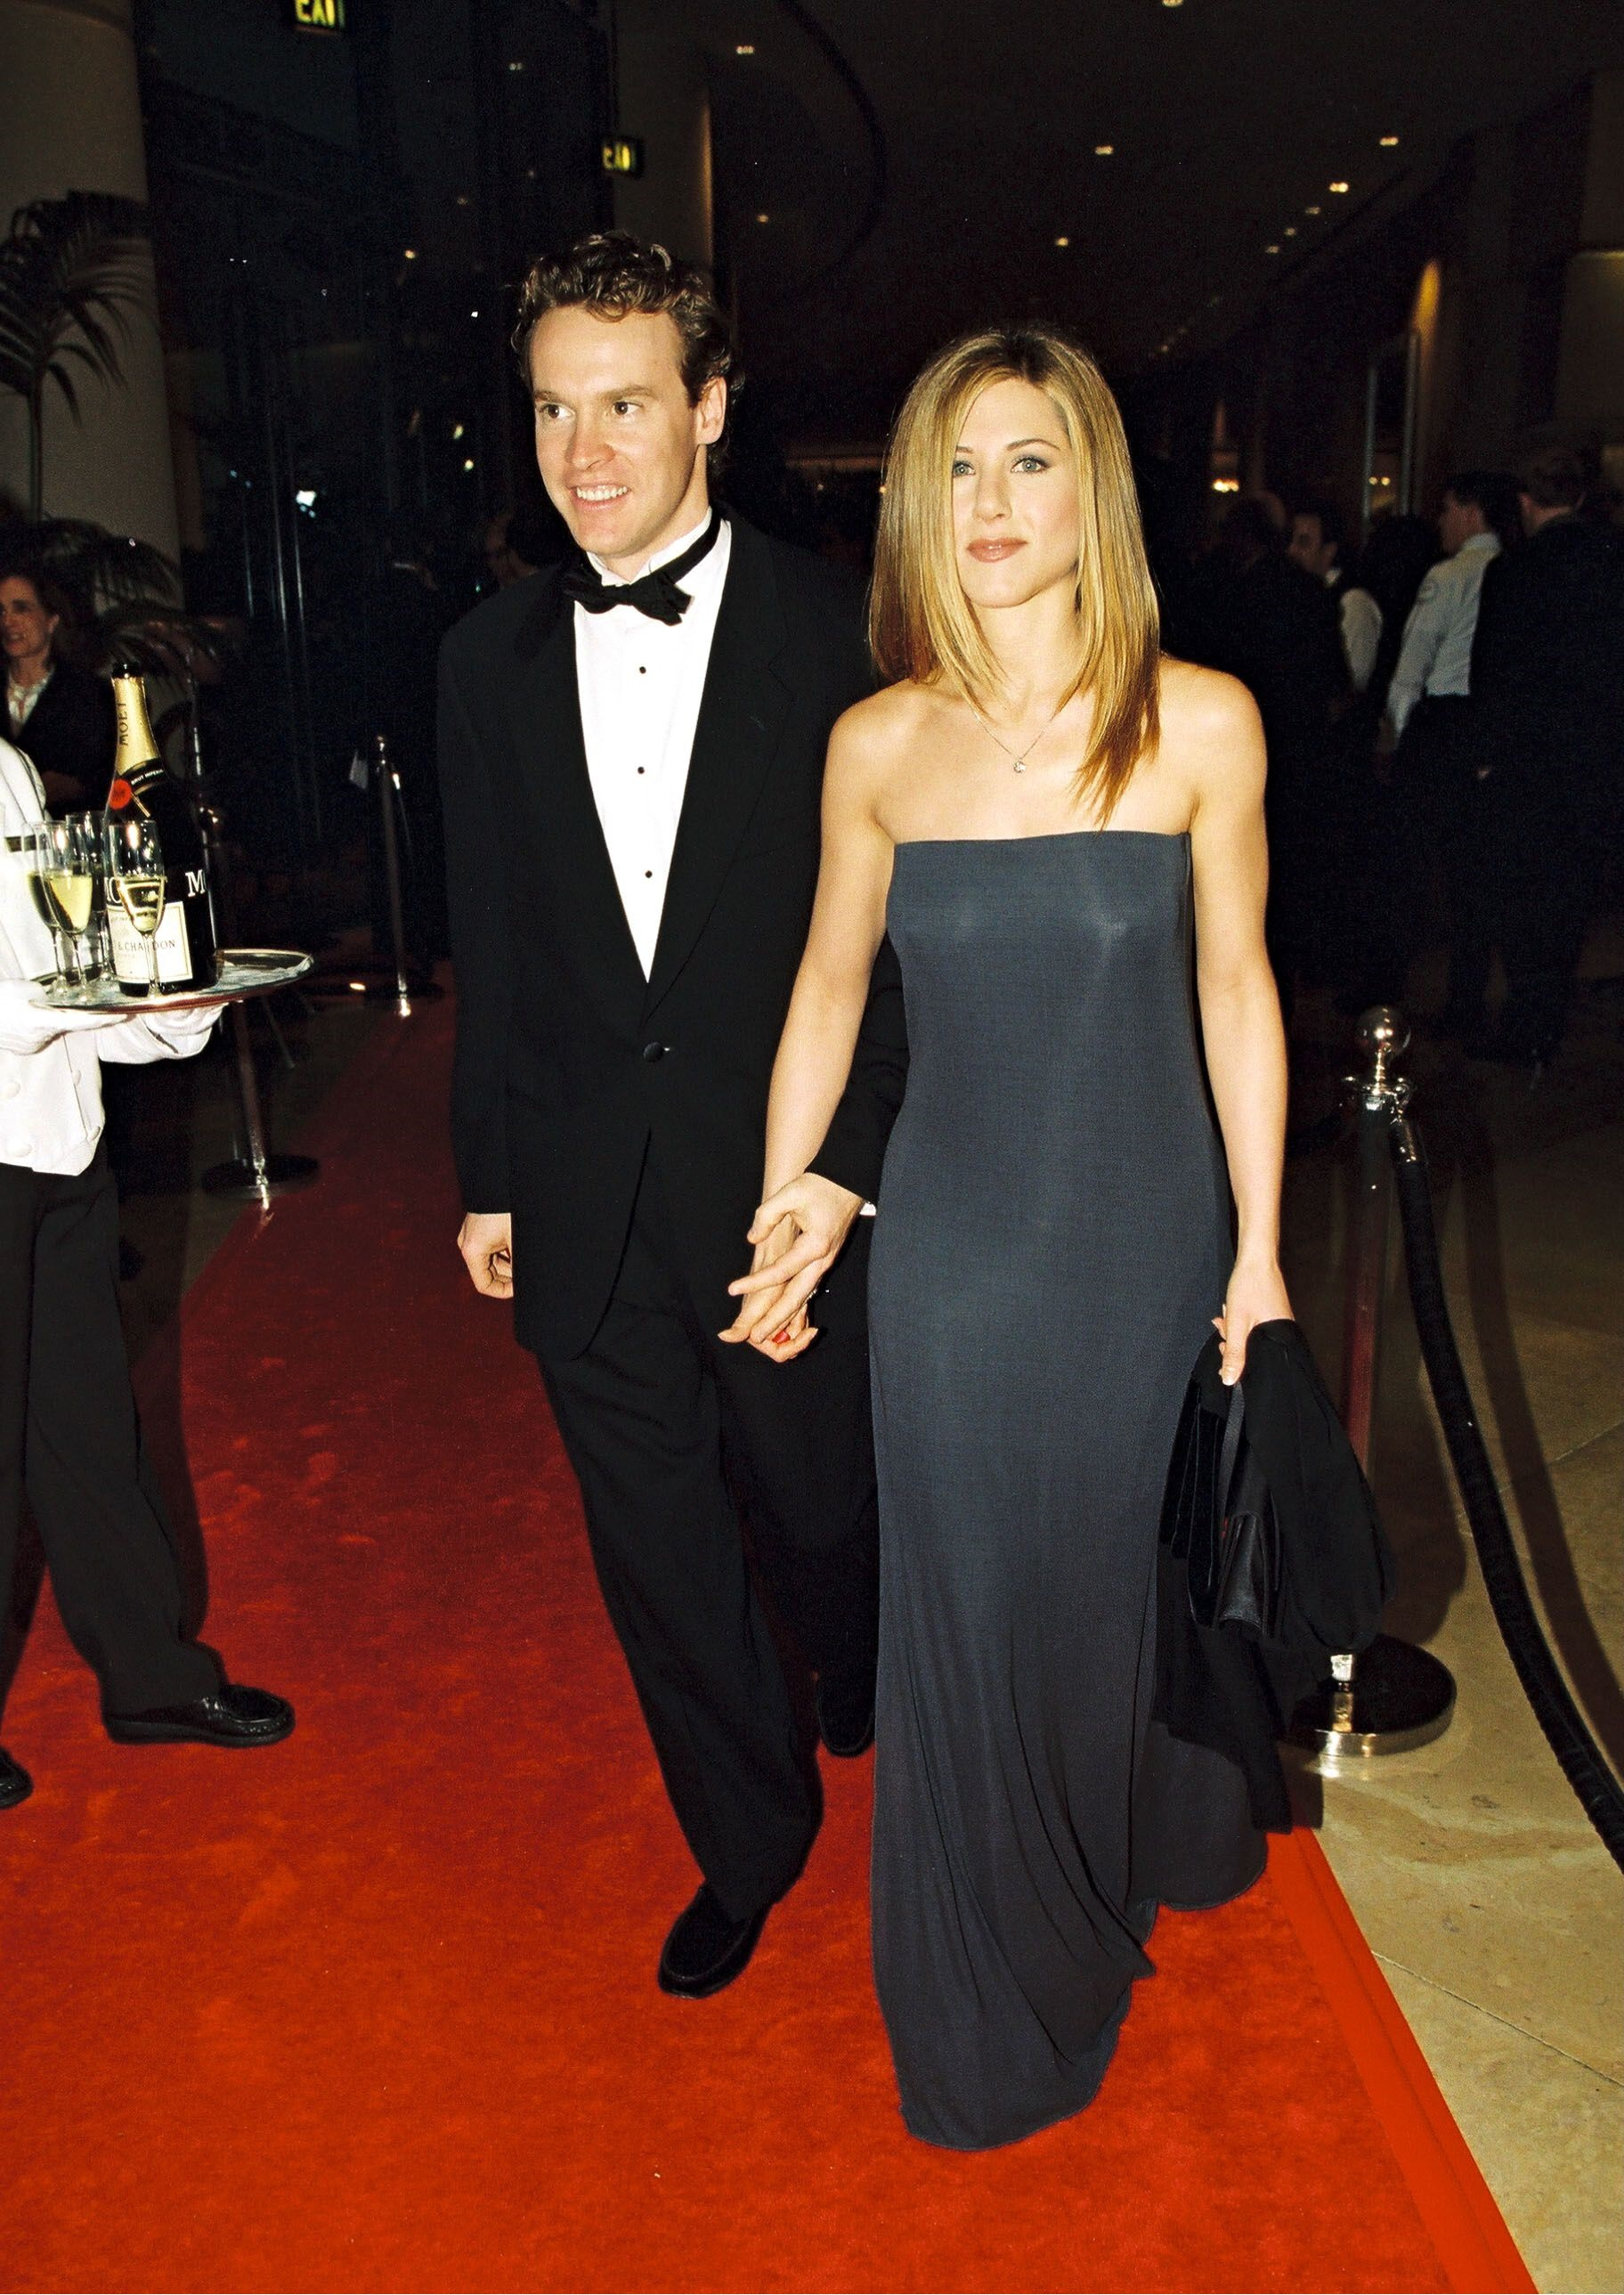 Tate Donovan and Jennifer Aniston